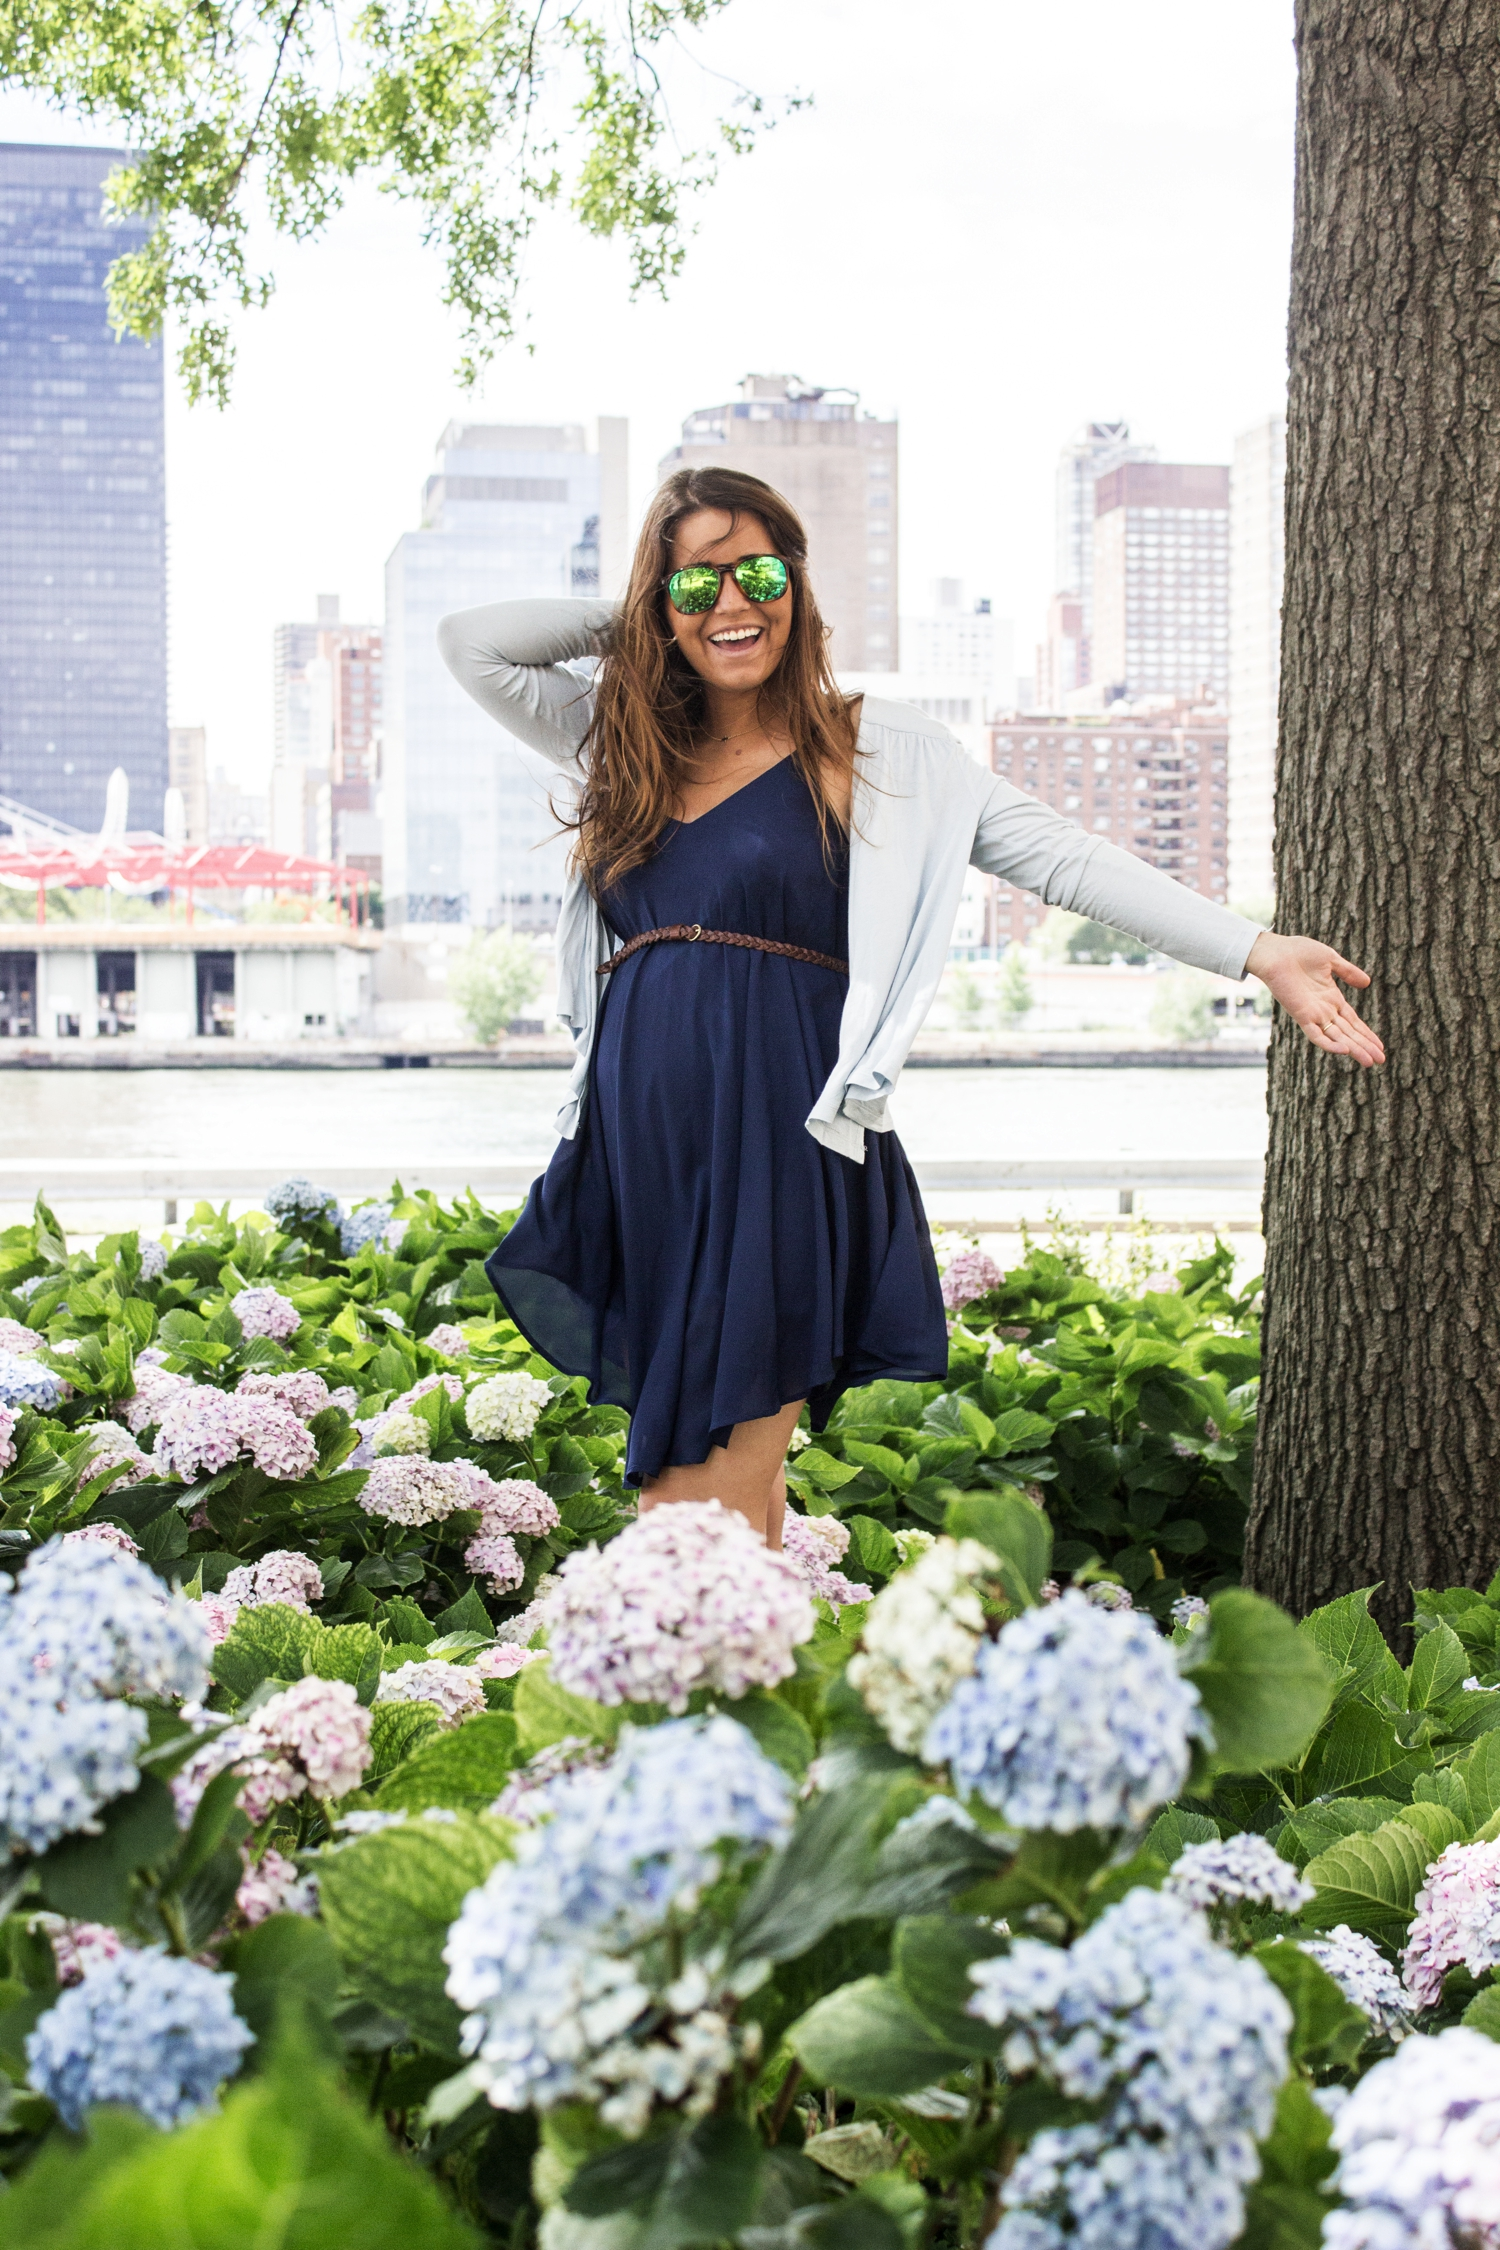 loreto_made_in_style_new_york_travel_blue_dress_empire_state_white_vans_leather-41